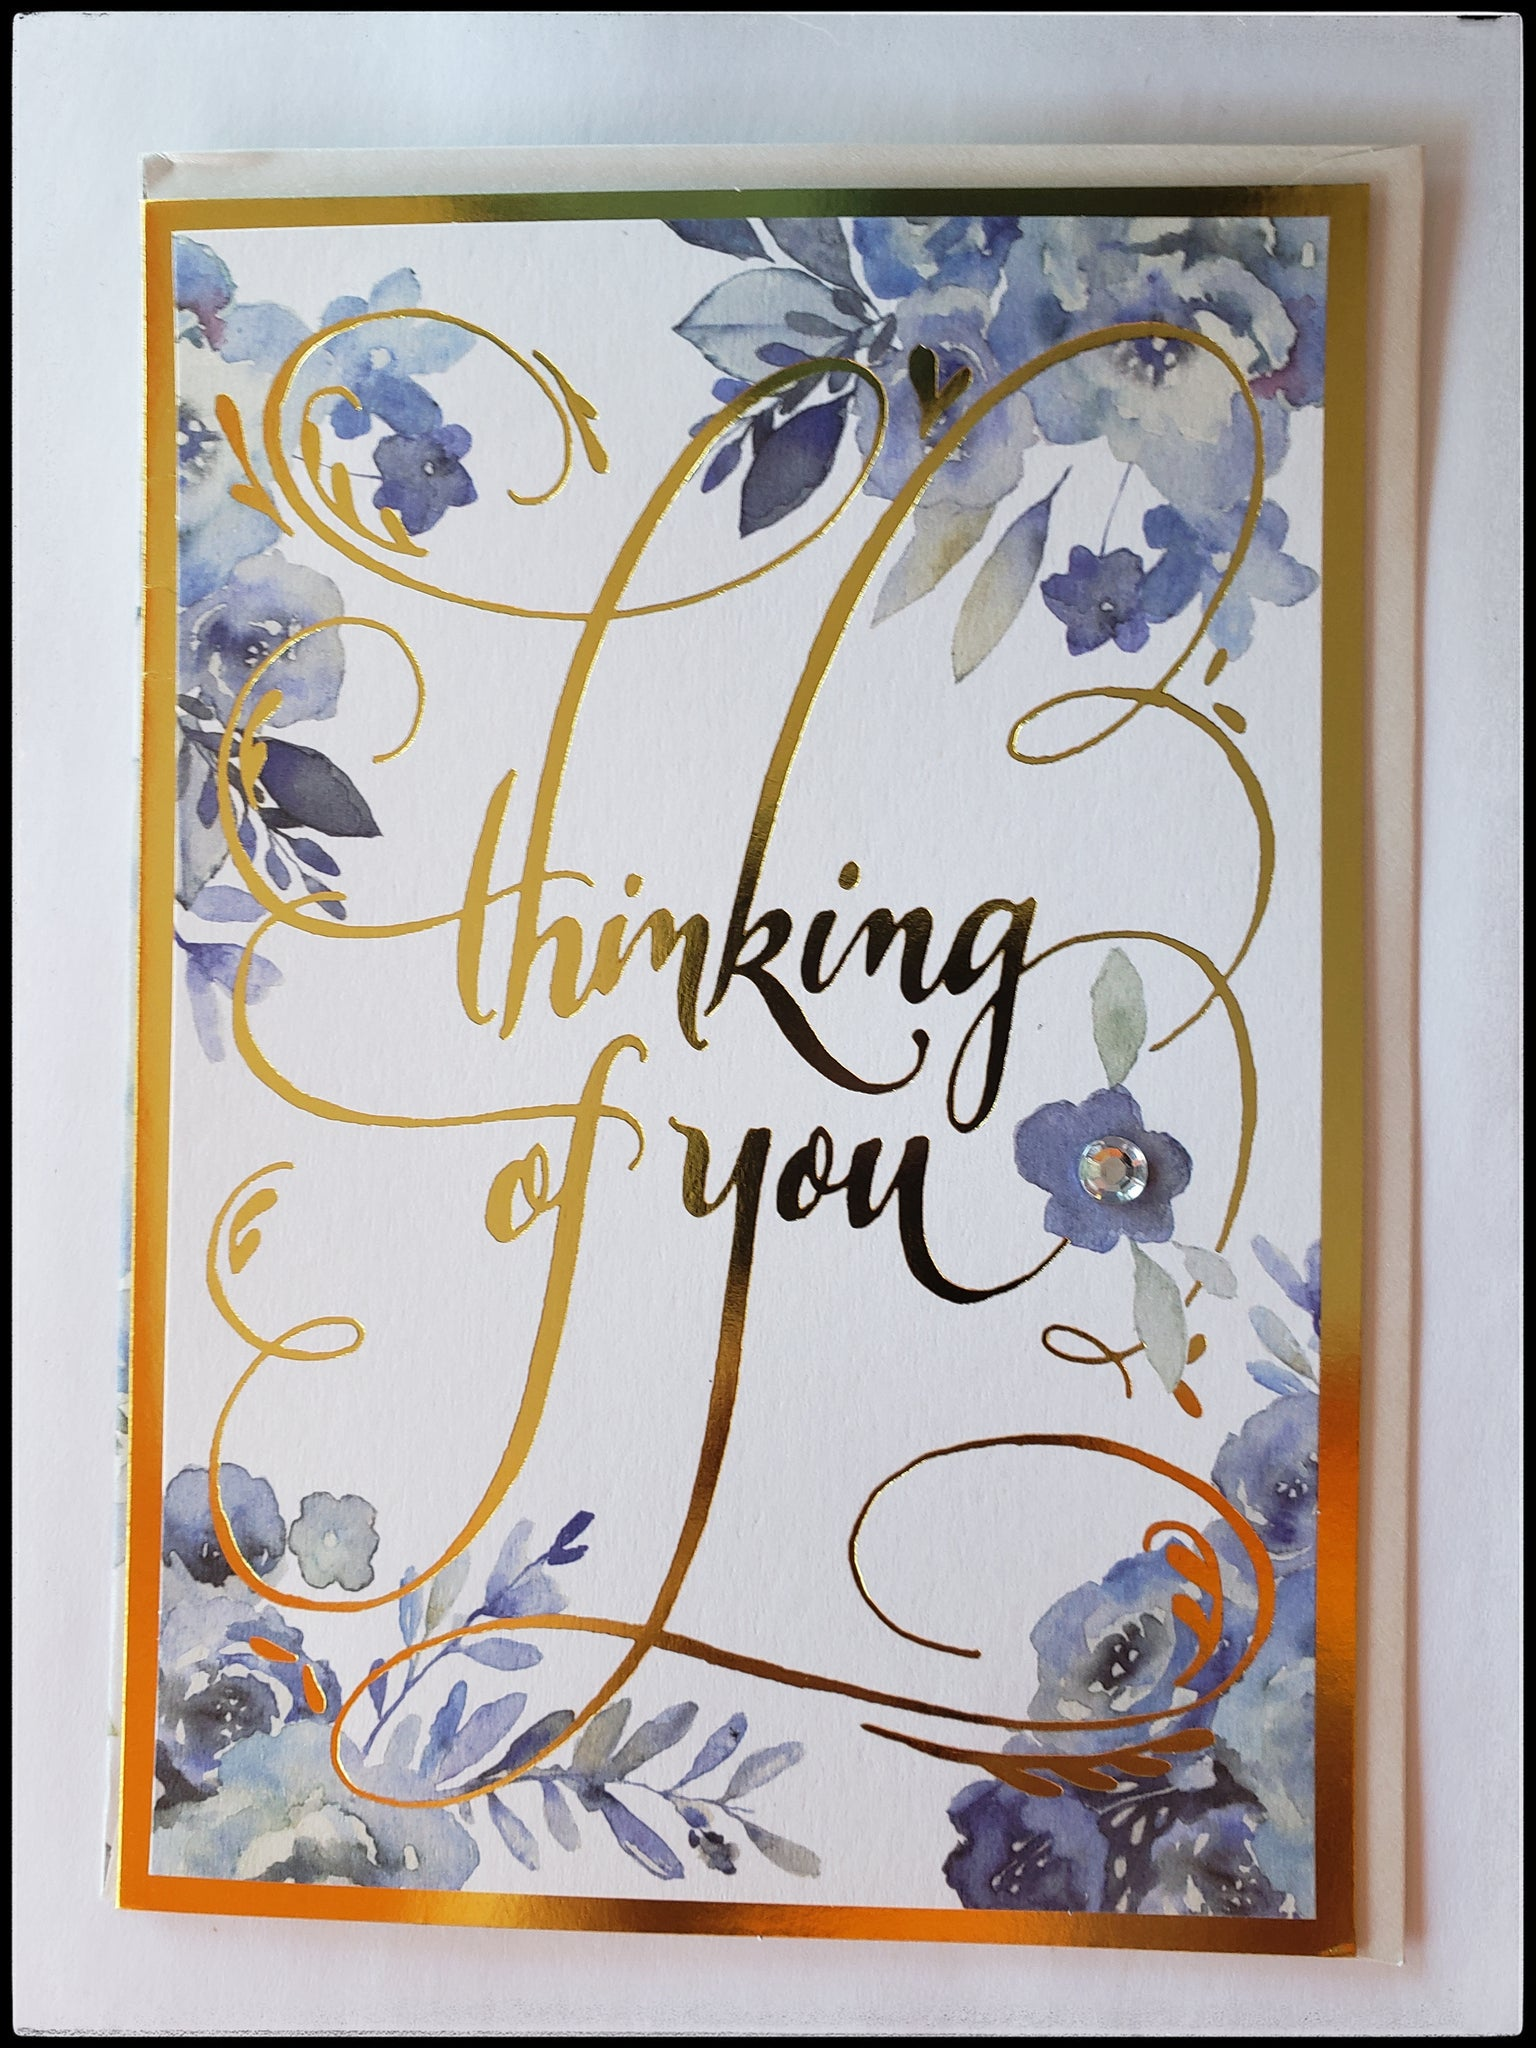 "Thinking Of You  Inside message: You are so special to me, and you are always in my thoughts""   Full color embellished interior   Blue floral with gold accents   Decorative envelope liner   Extra postage may be required   5.5"" x 7.5"" with envelope ADA Santa Fe The Gilded Page"